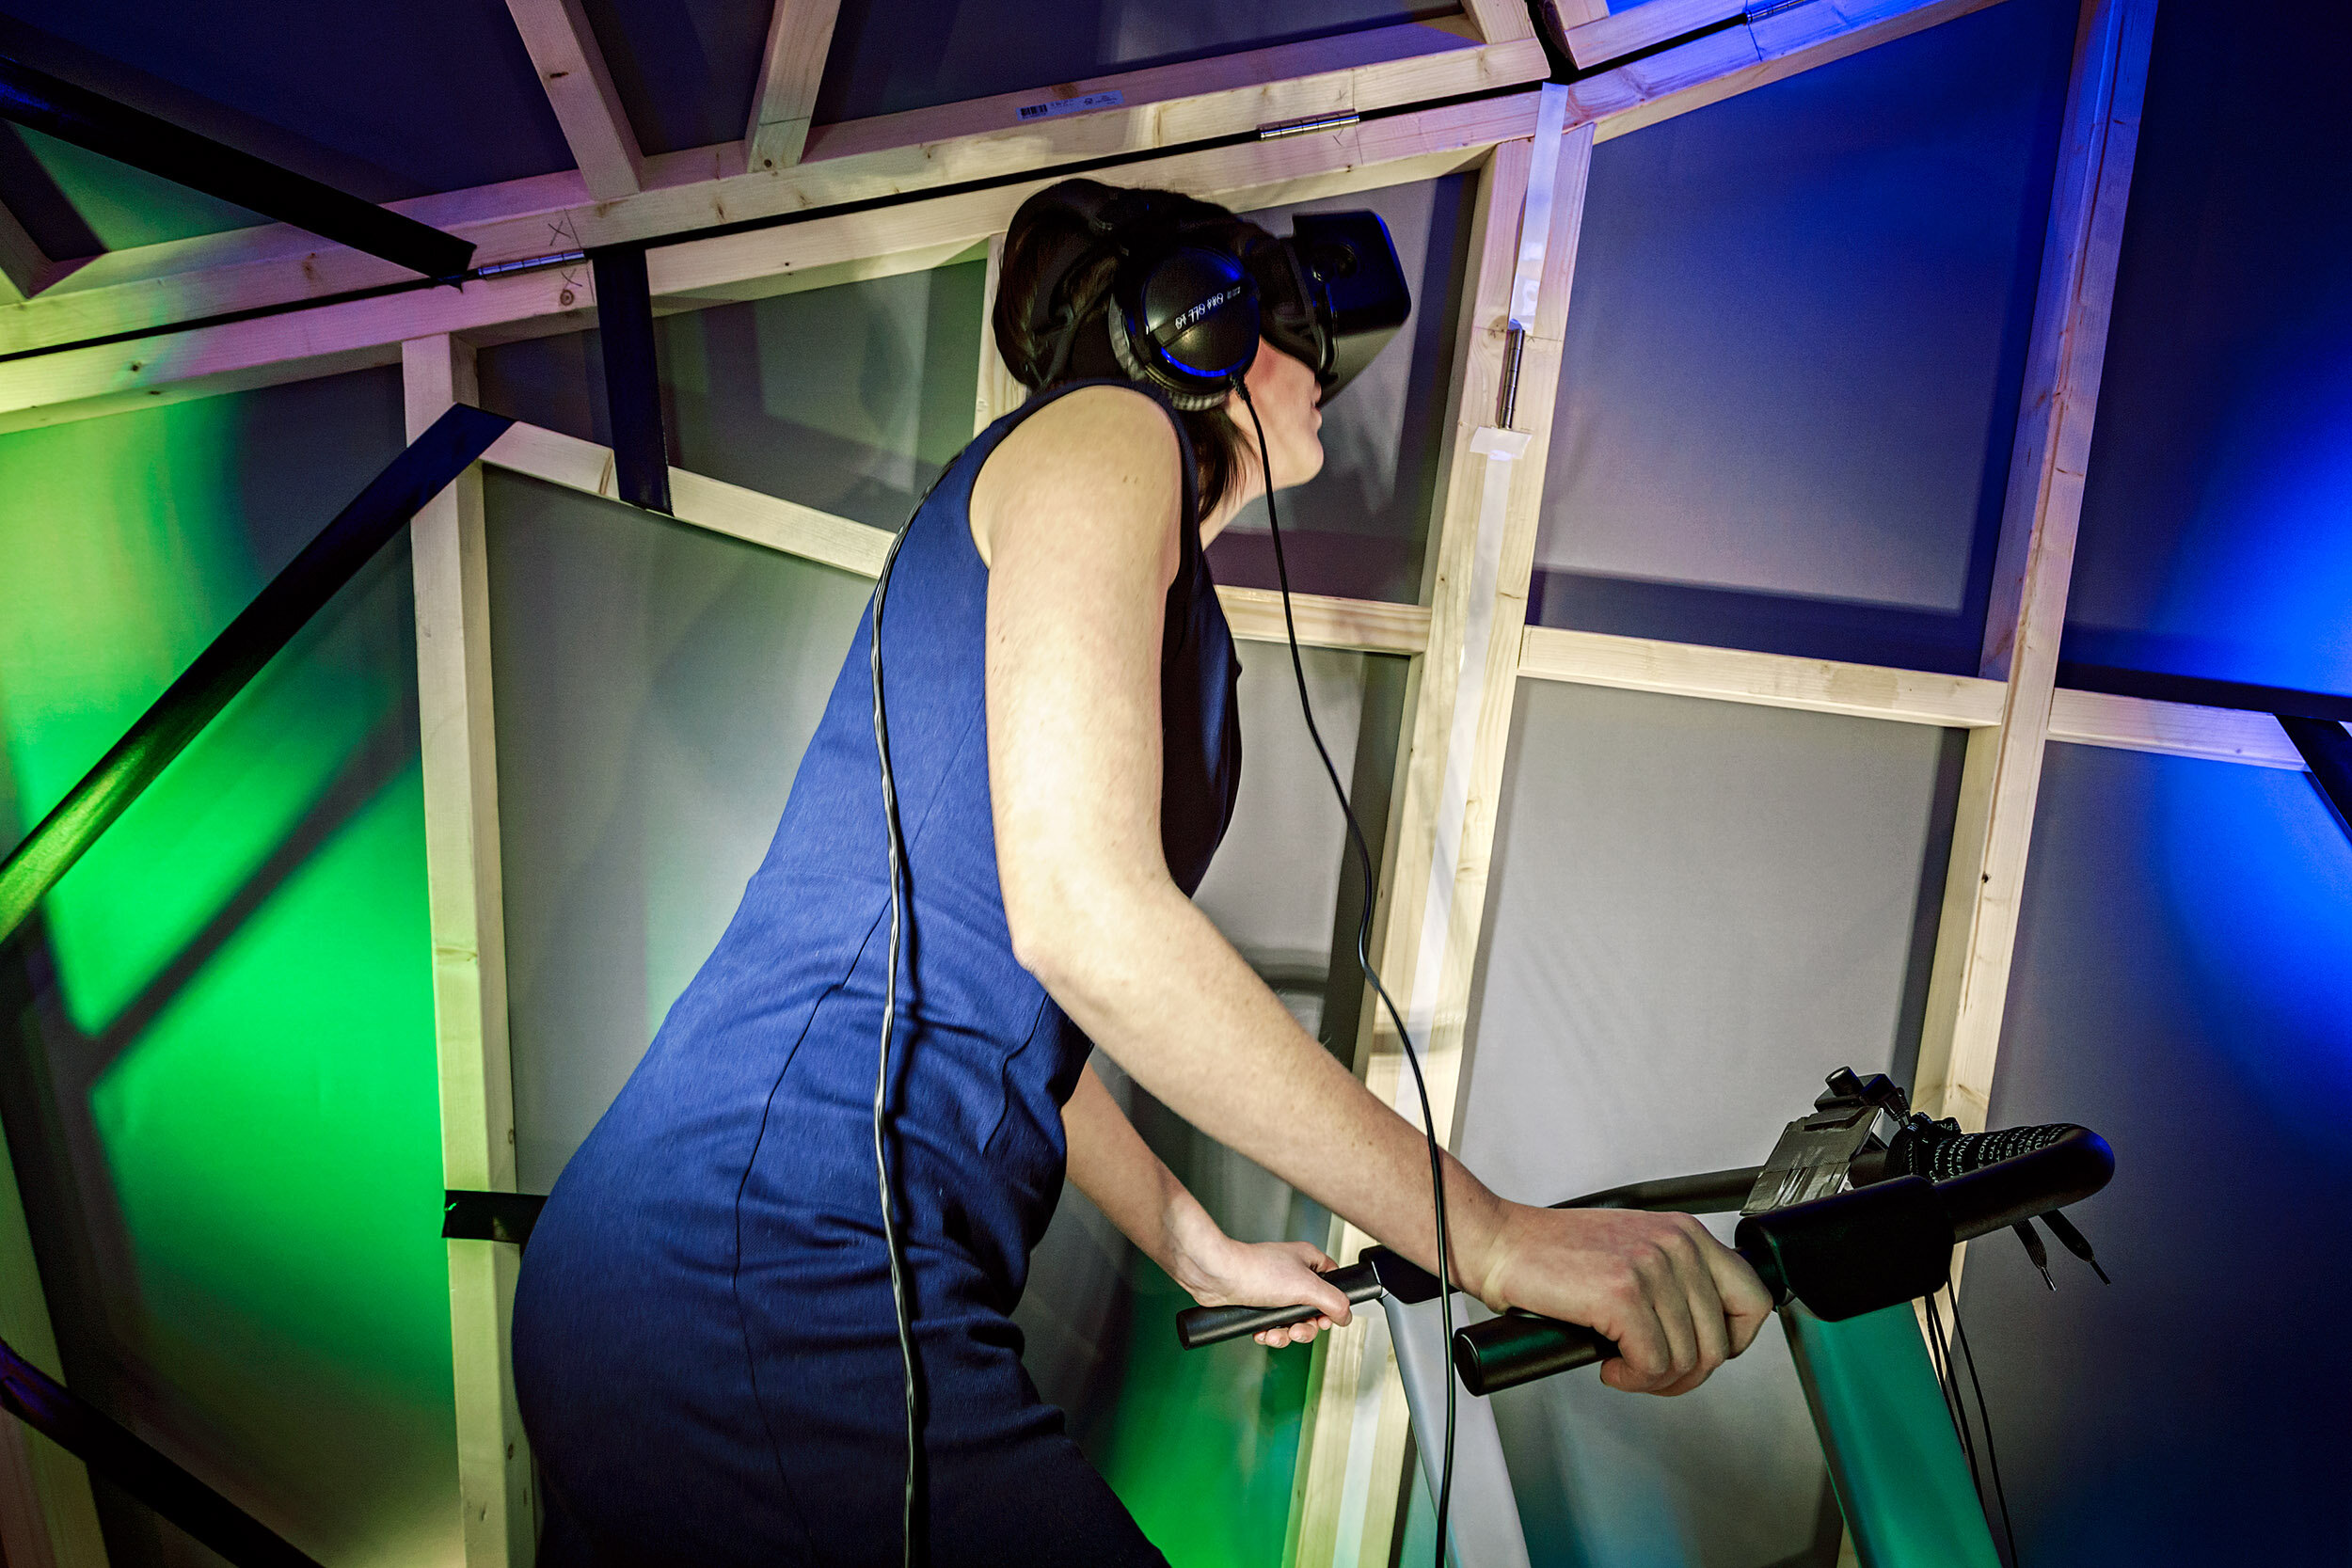 - Running on a treadmill they controlled the VR experience, running from Iran to the Netherlands.